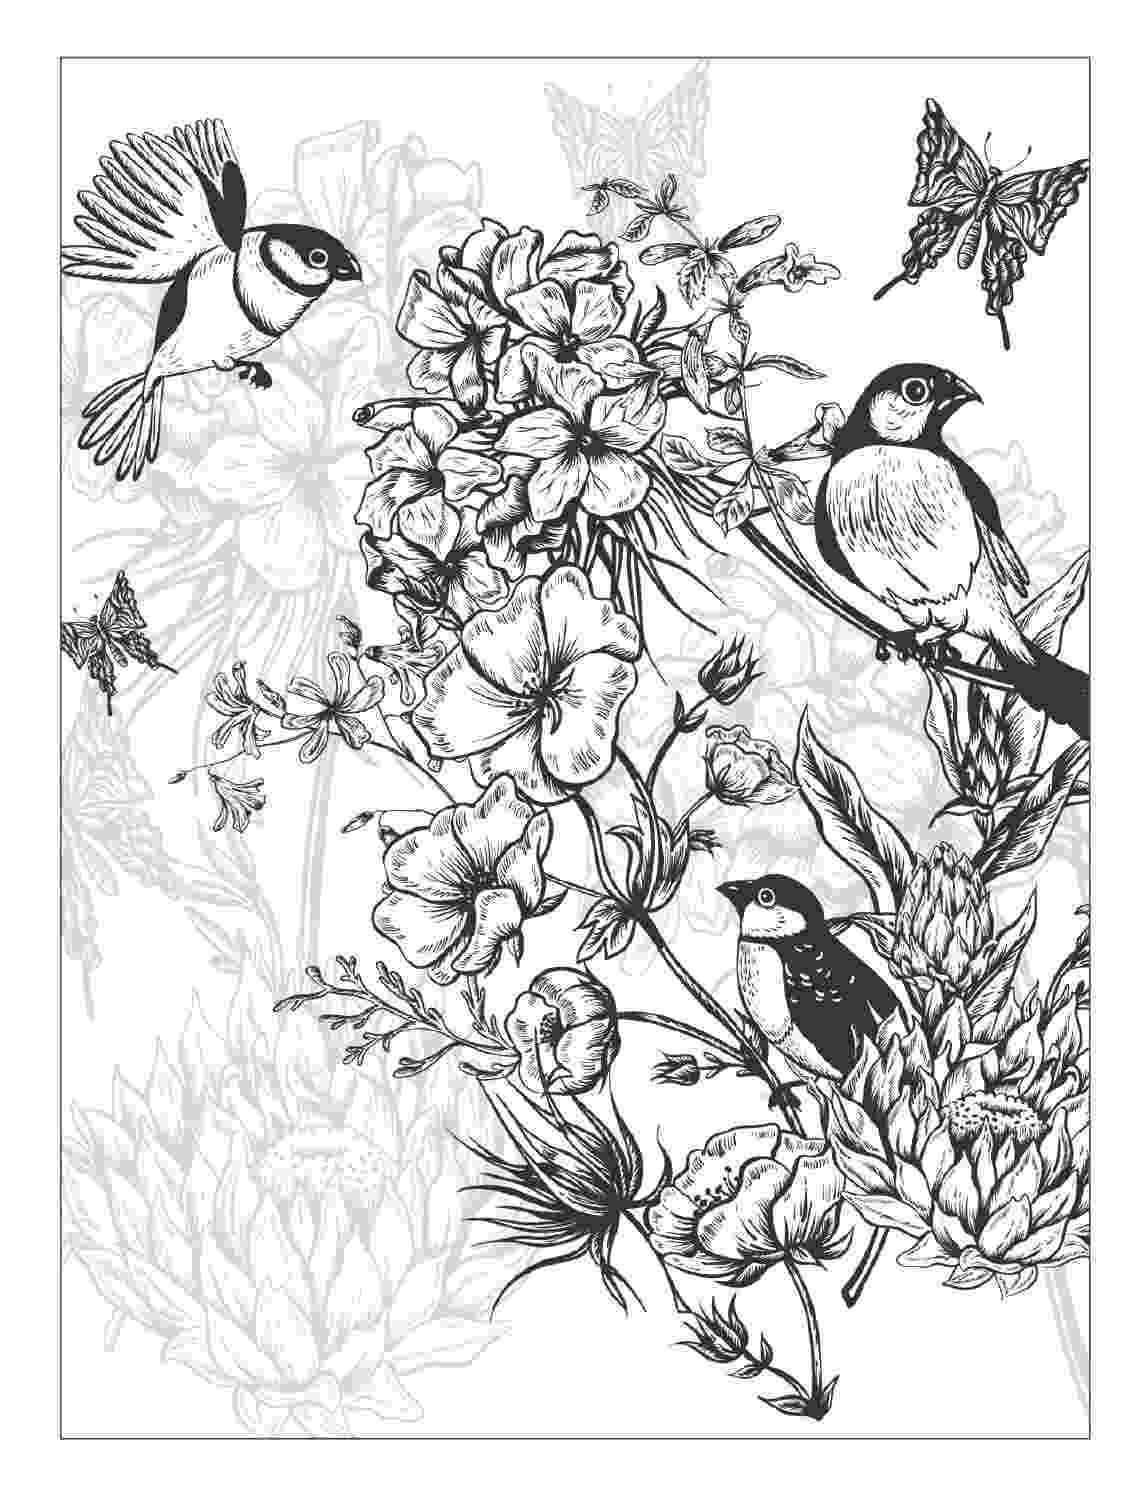 floral designs coloring book beautiful flowers detailed floral designs coloring book designs coloring floral book